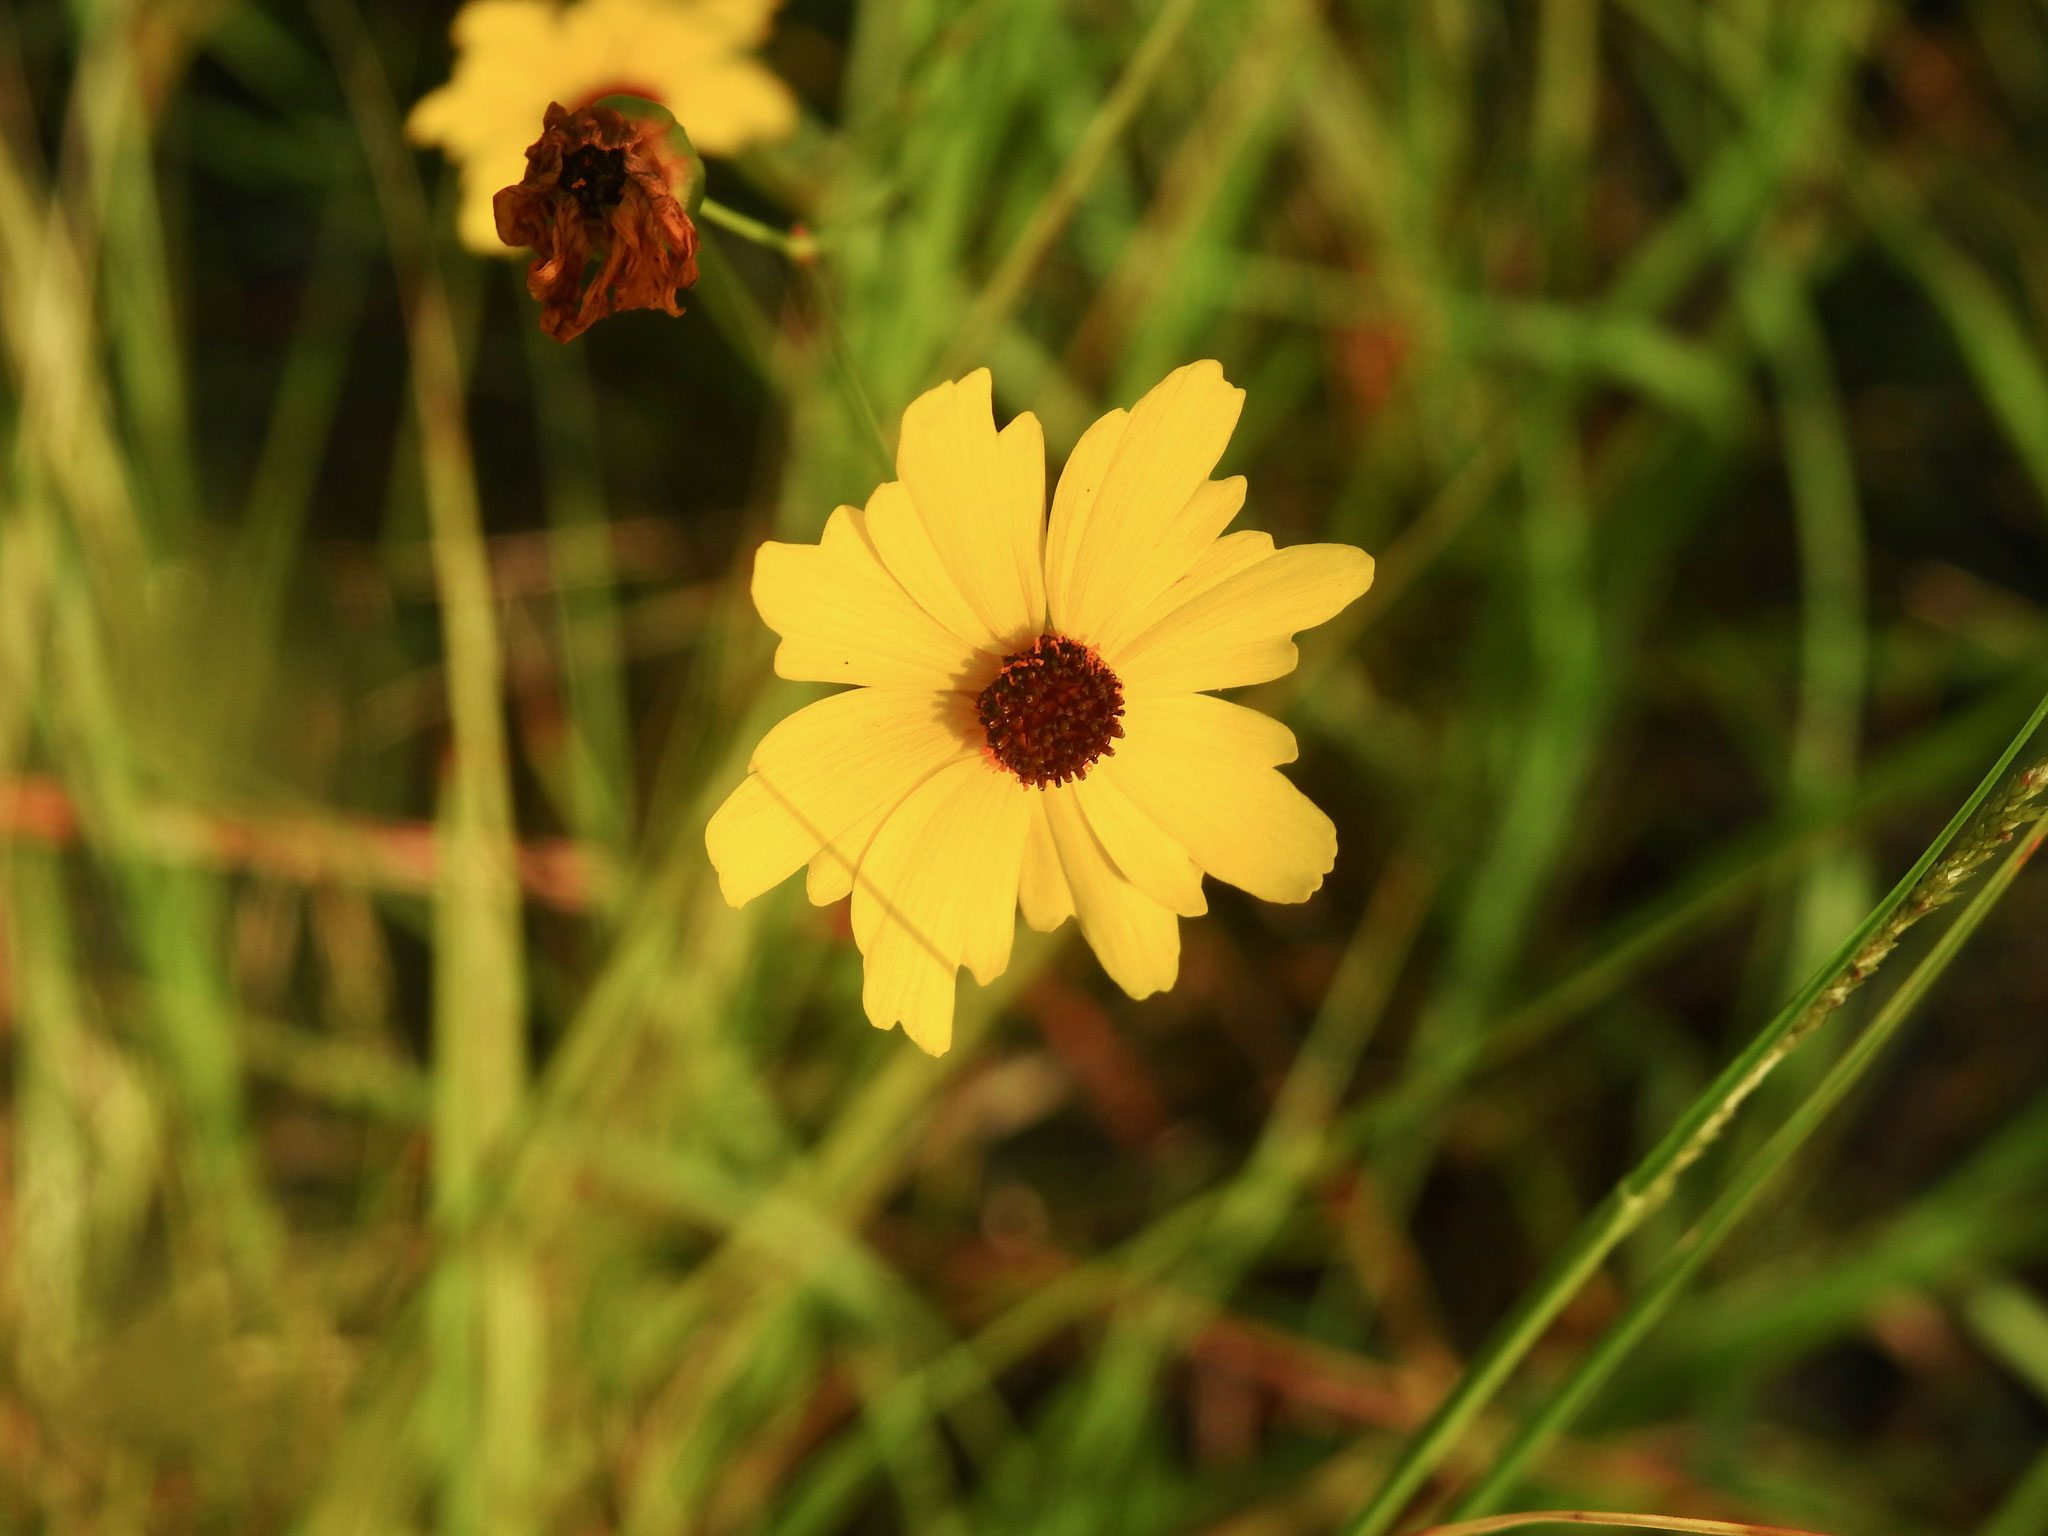 tickseed- coreopsis leavenworthii, Photo by Art Smith